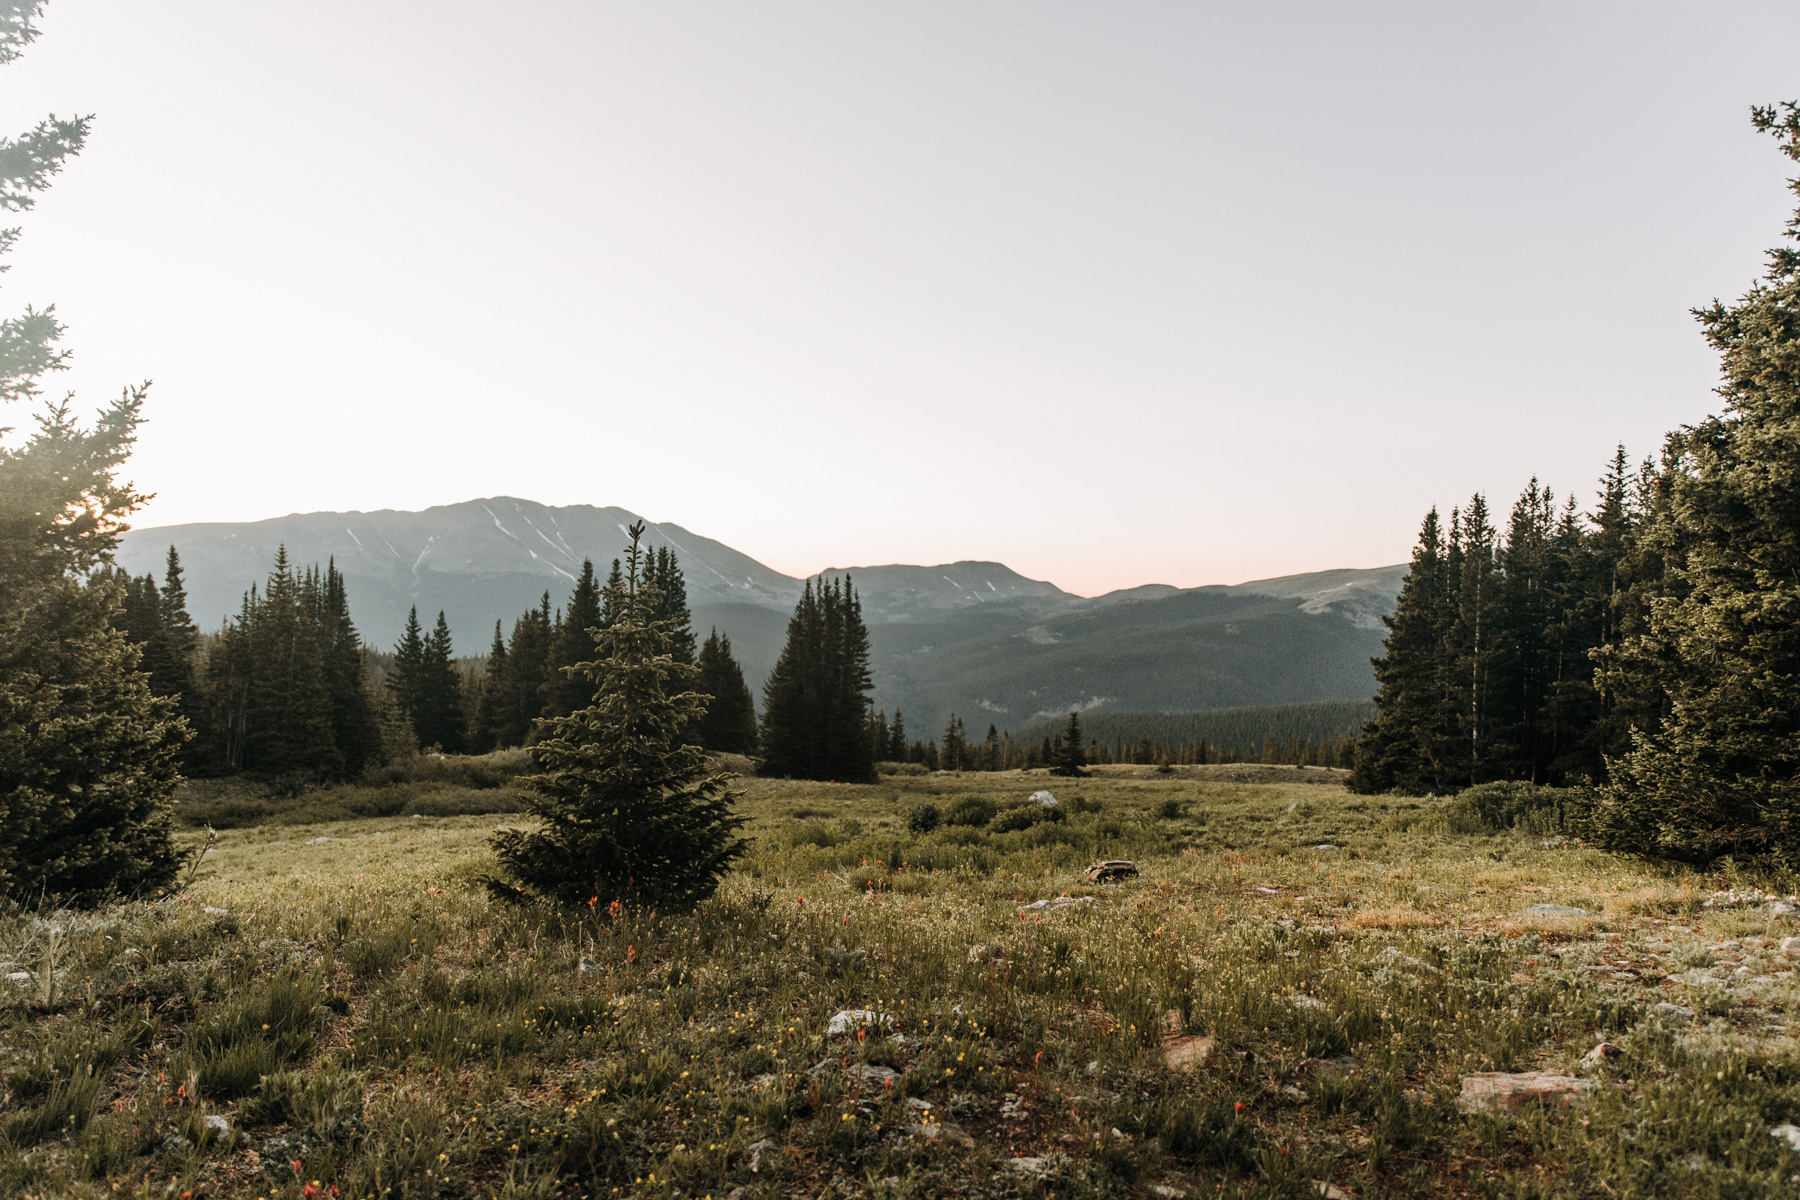 The 10 Best Hikes and Trails Near Denver | Crystal Lake, Breckenridge